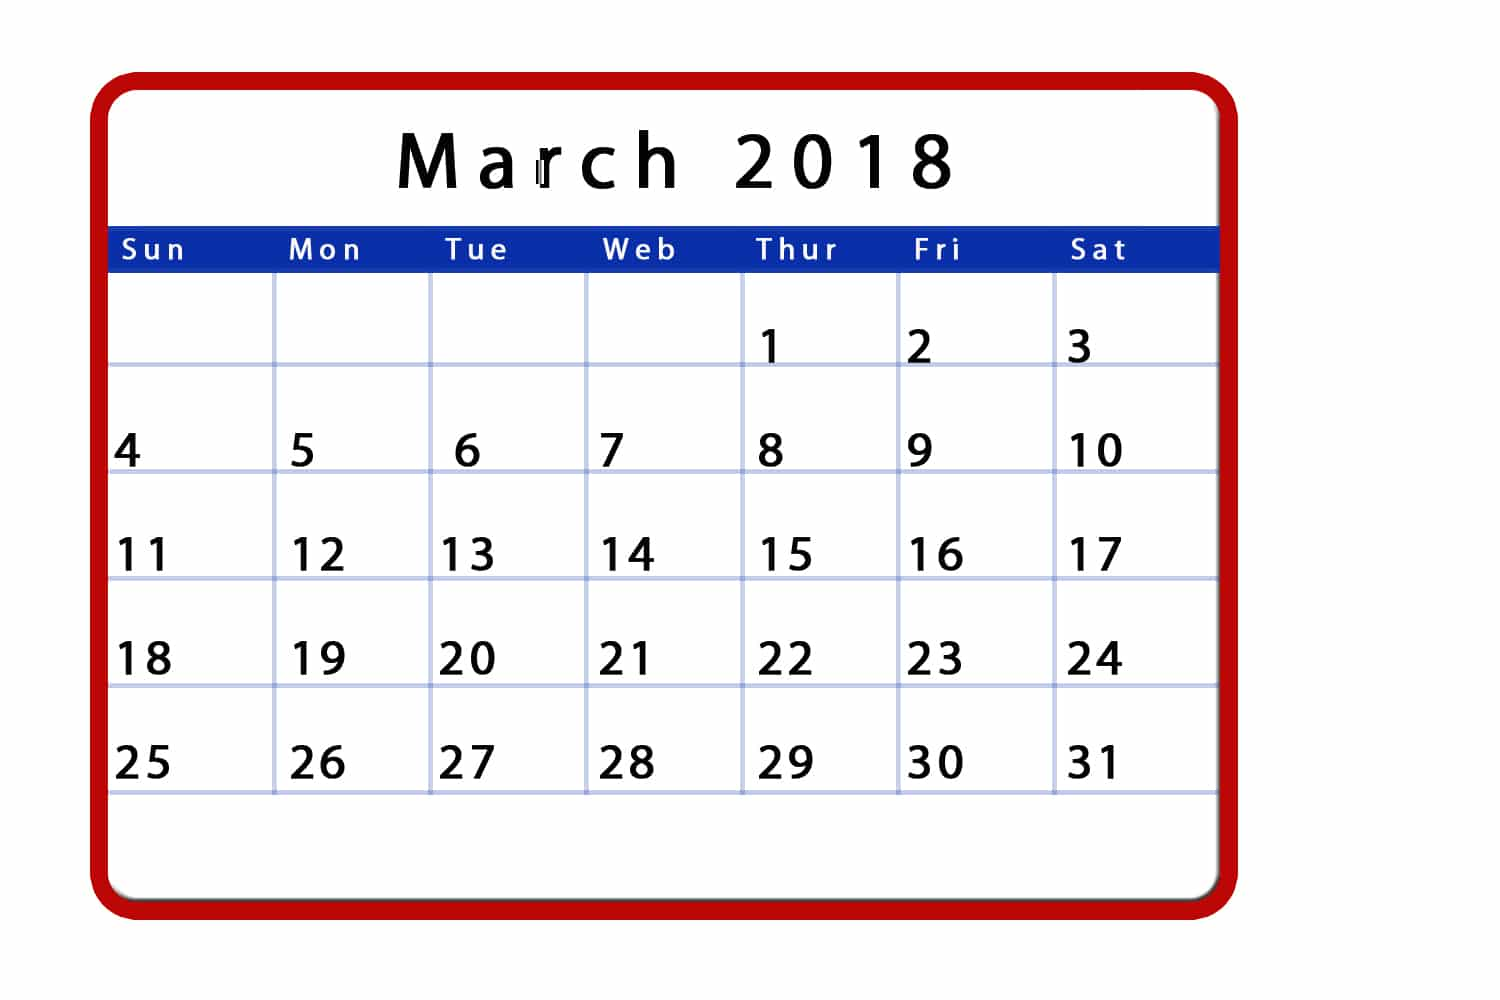 March 2018 Calendar Monthly